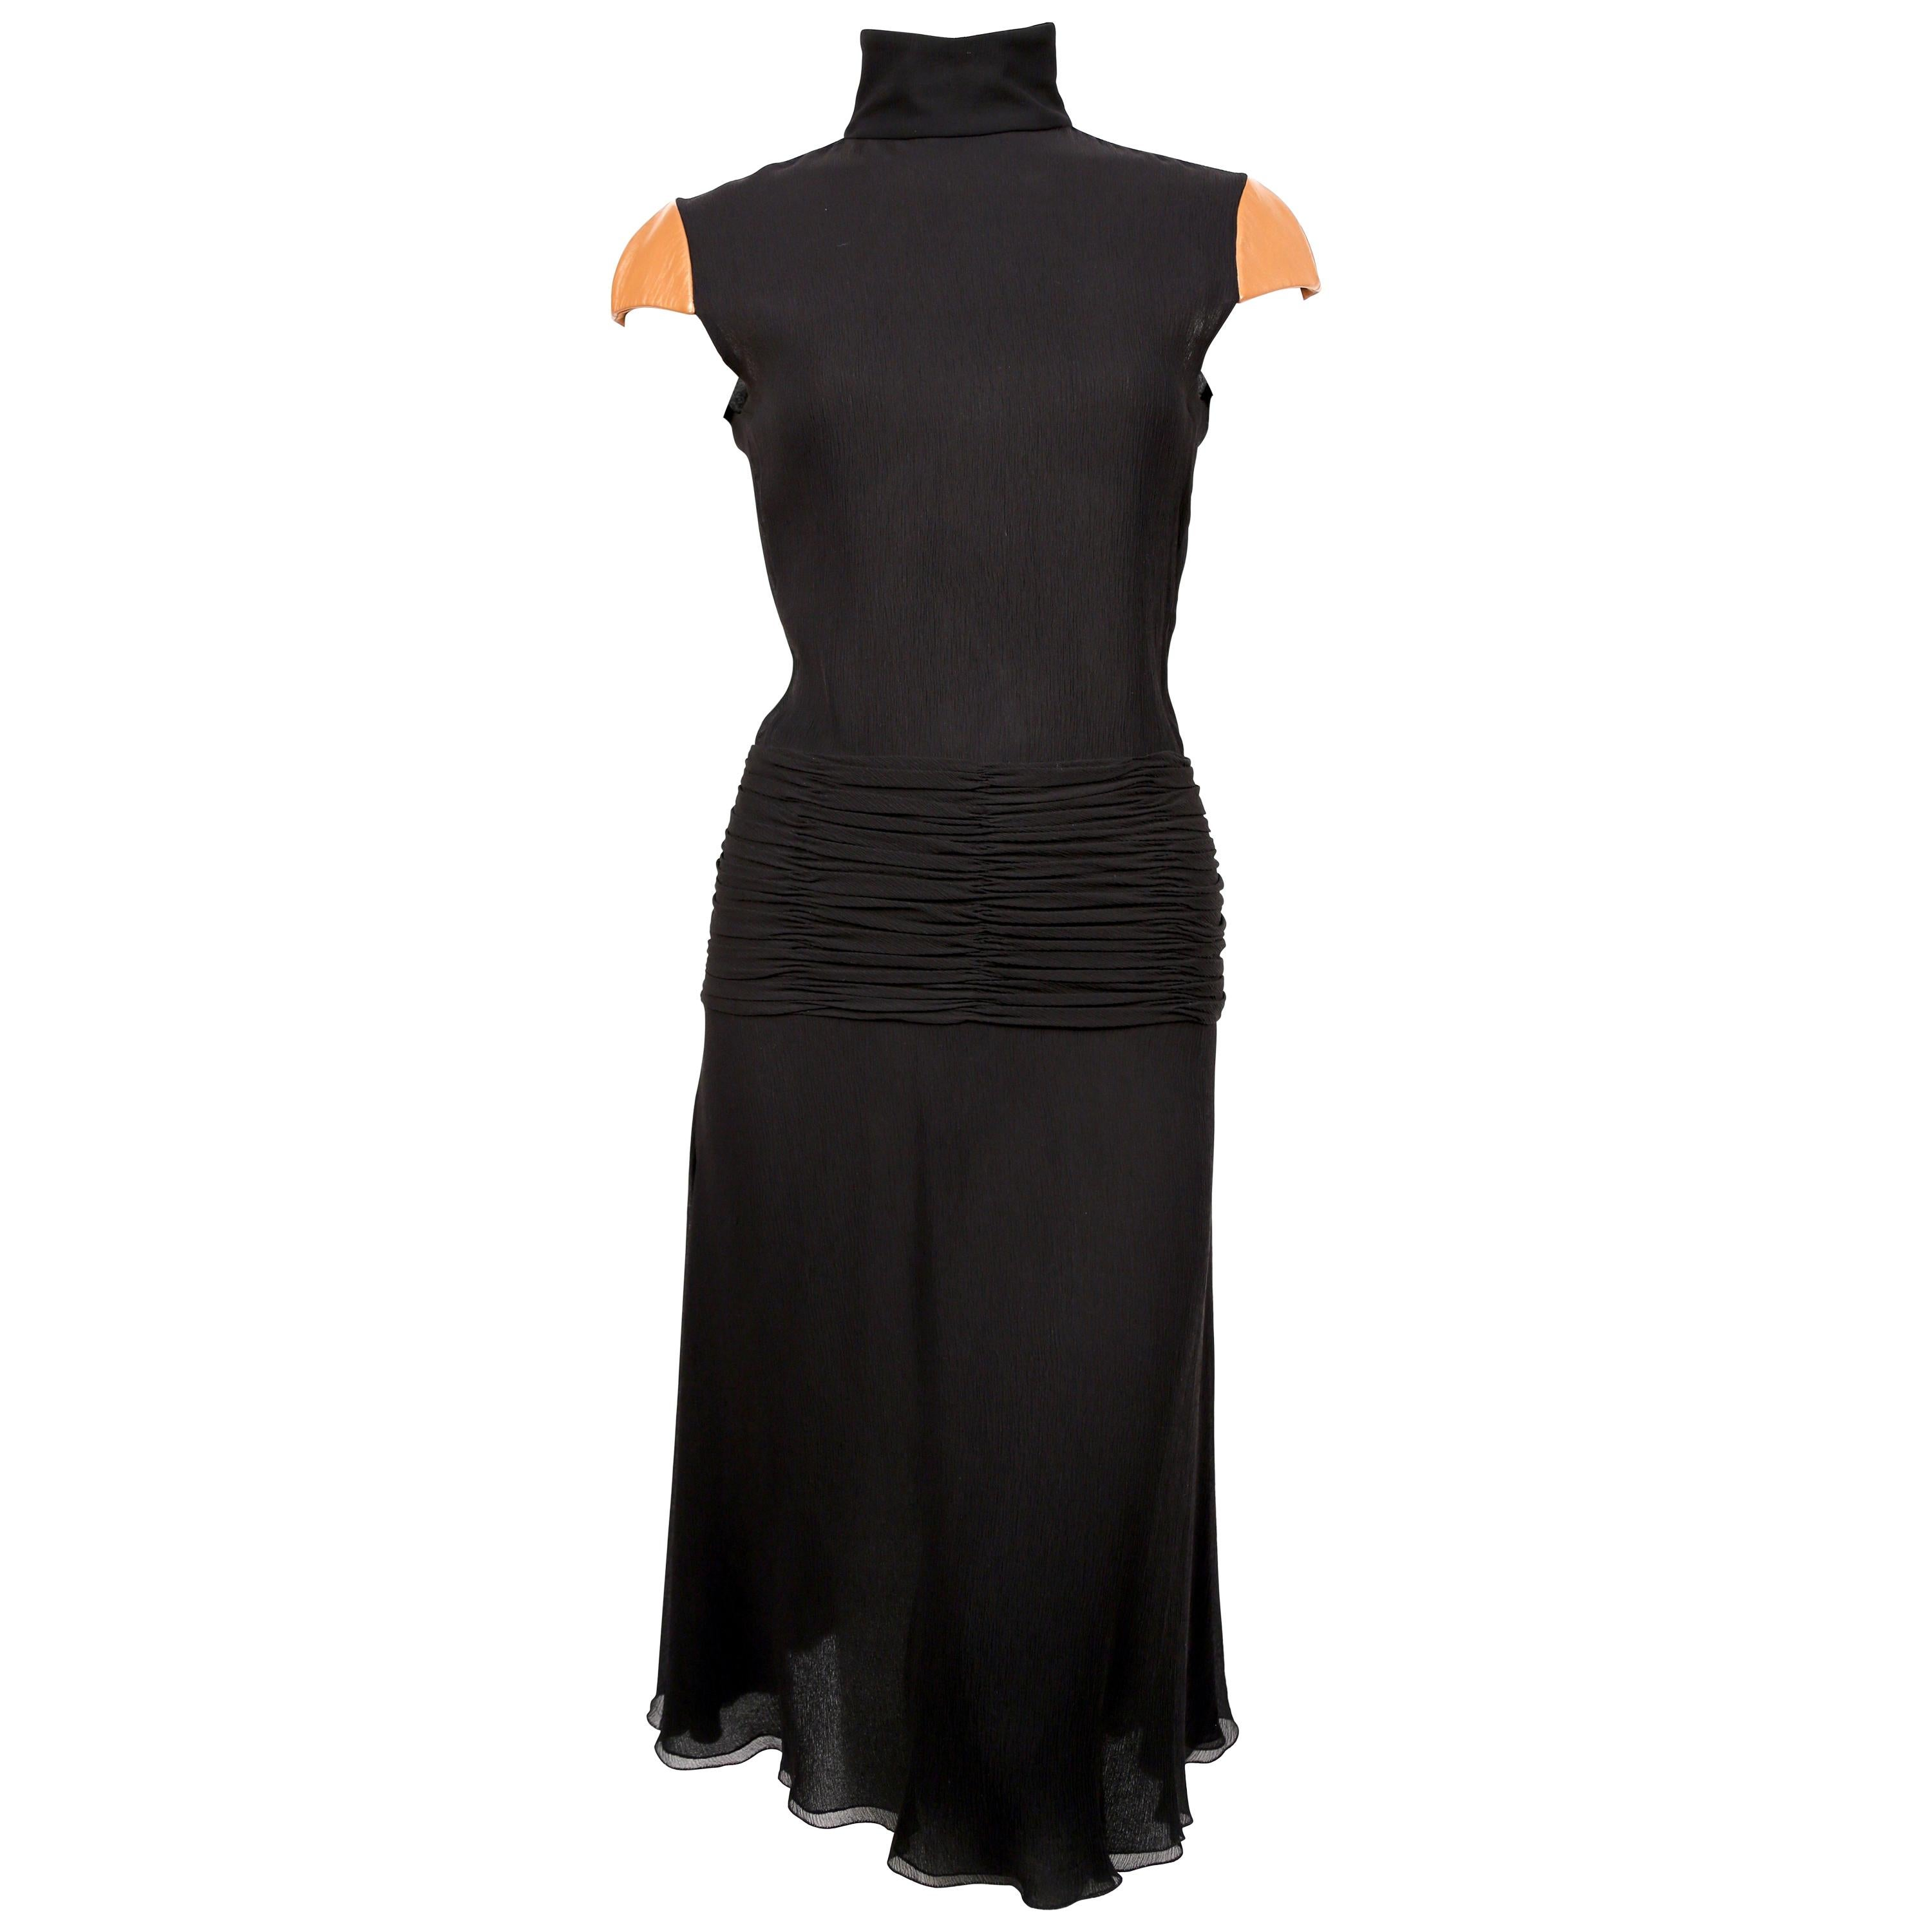 2001 GIANNI VERSACE COUTURE black crepe runway dress with leather cap sleeves